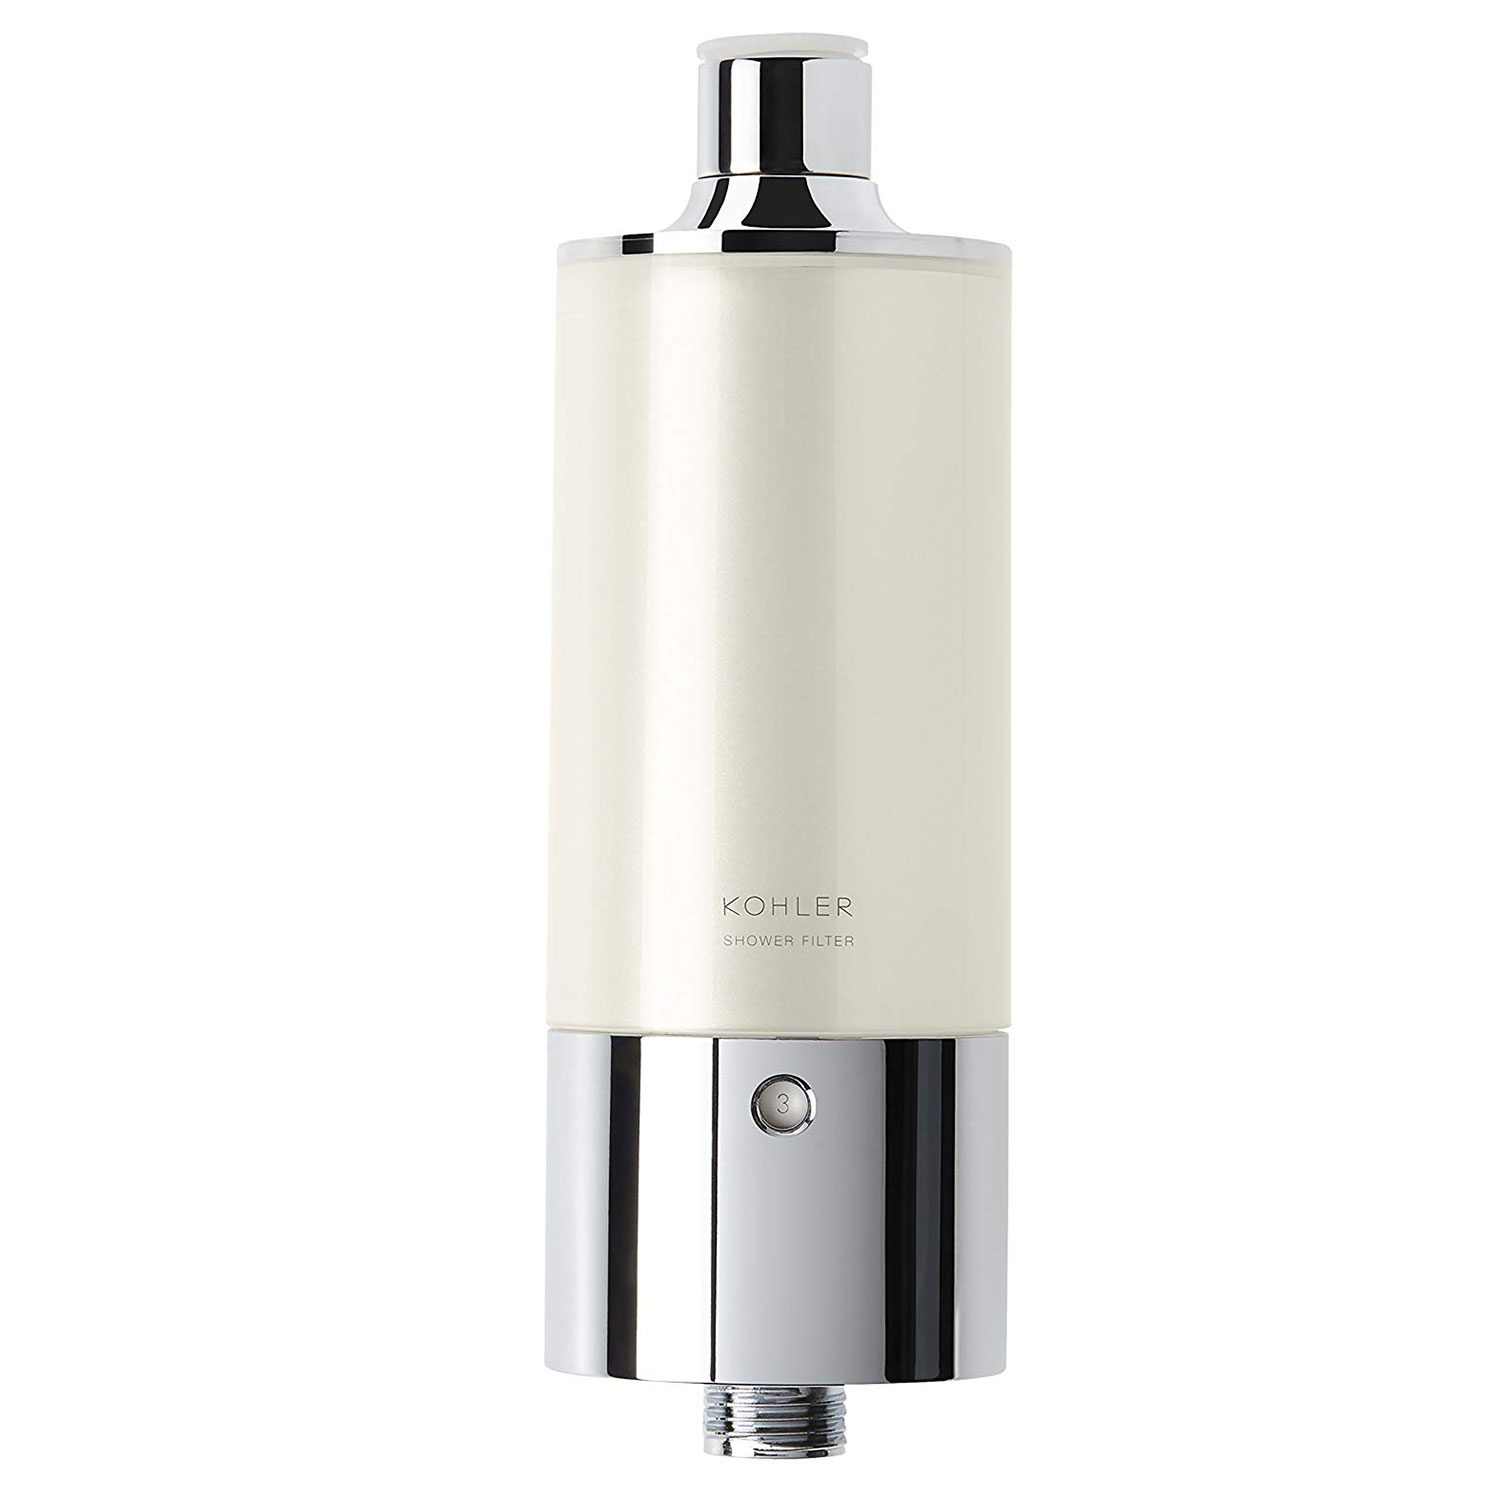 Kohler 30646-CP Aquifer Shower Water Filtration System